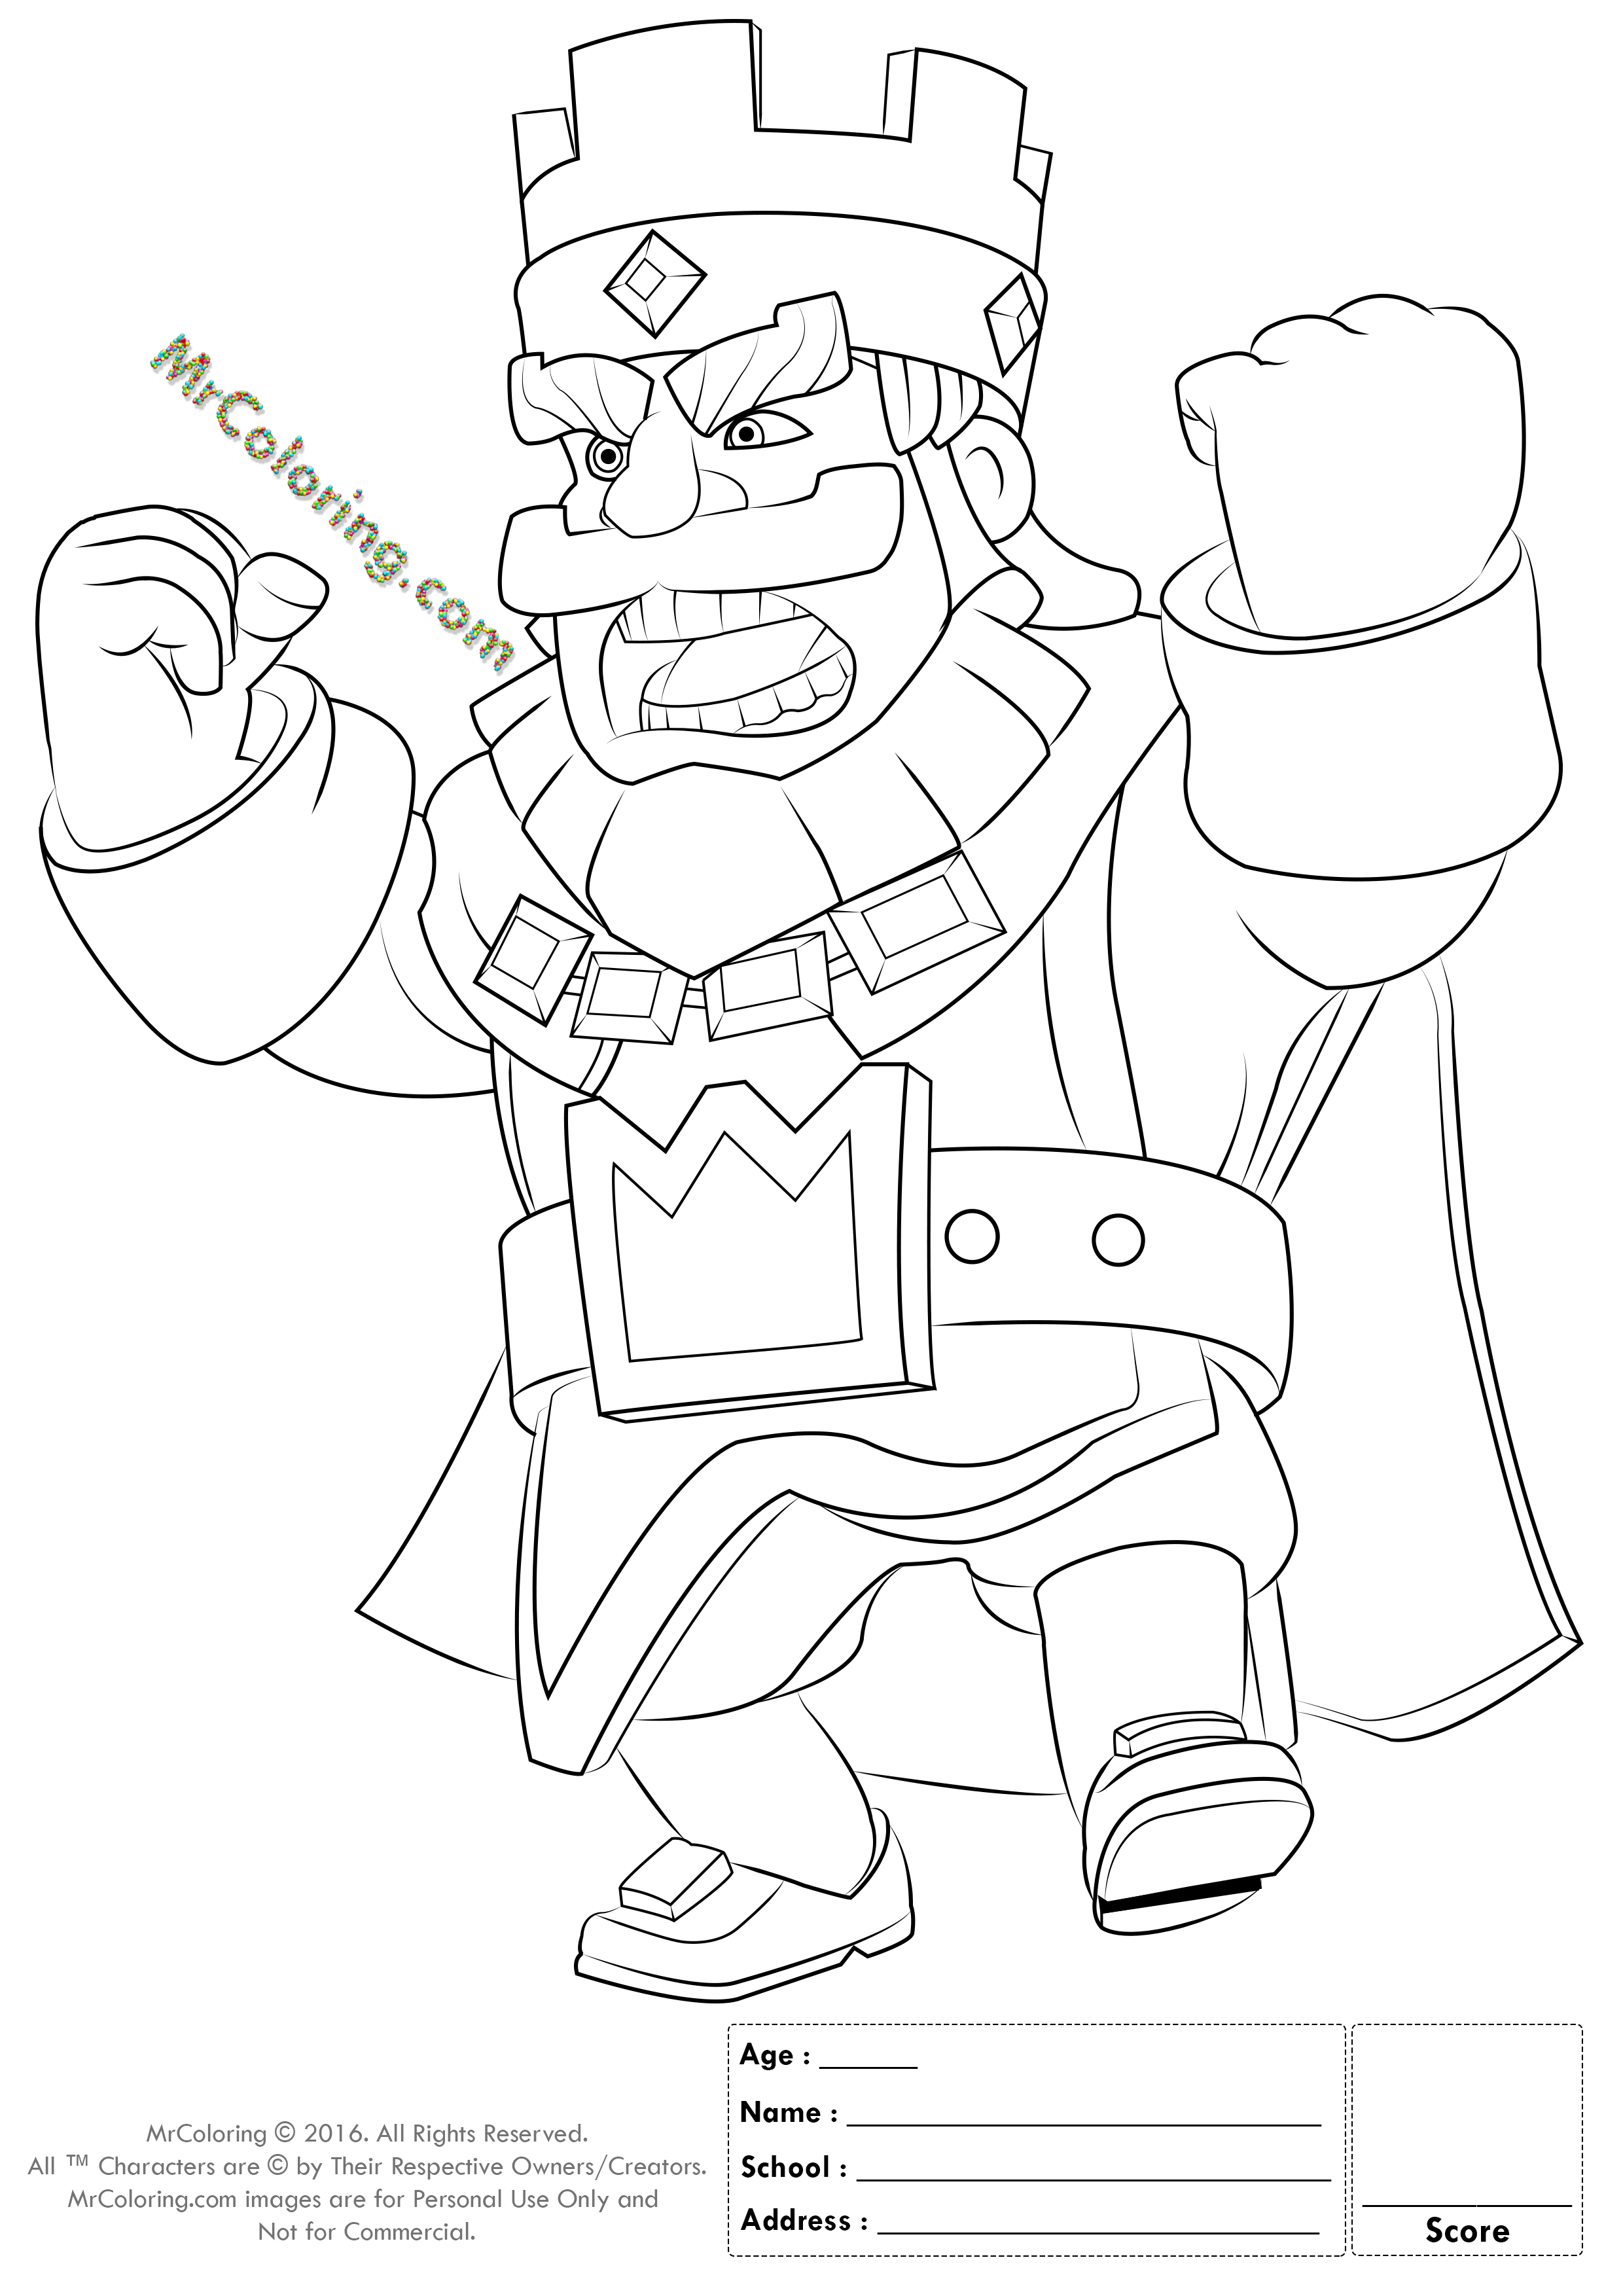 Printable Red King Clash Royale Online Coloring Pages 1 Clash